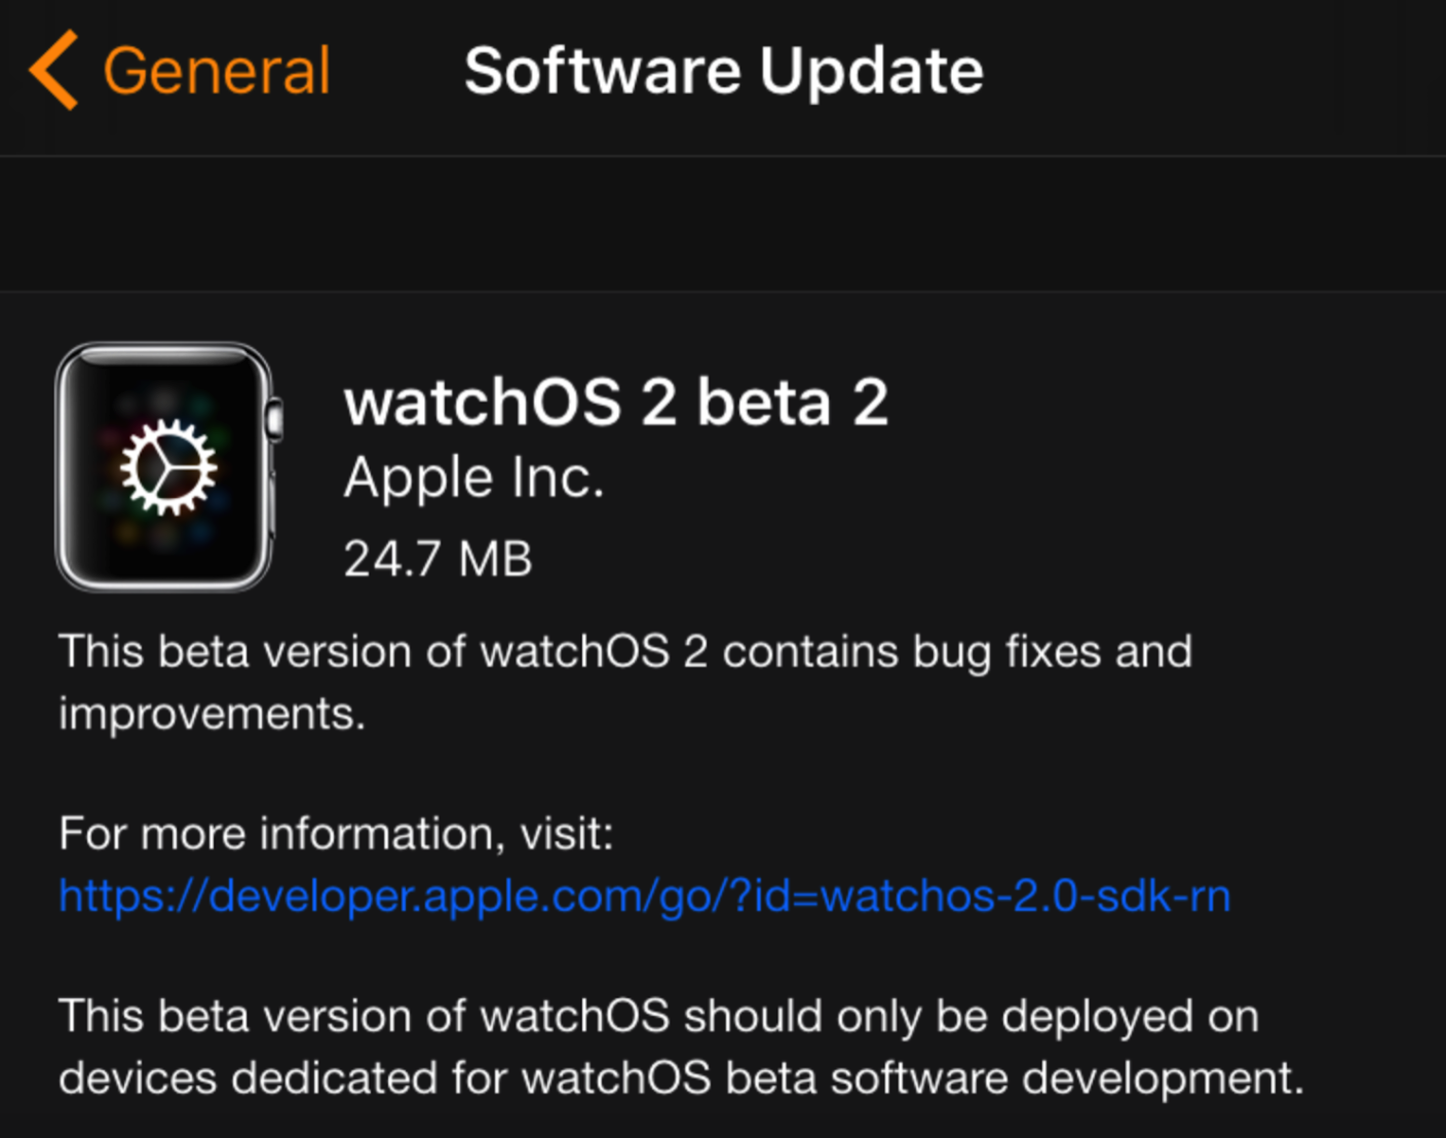 WatchOS 2 beta